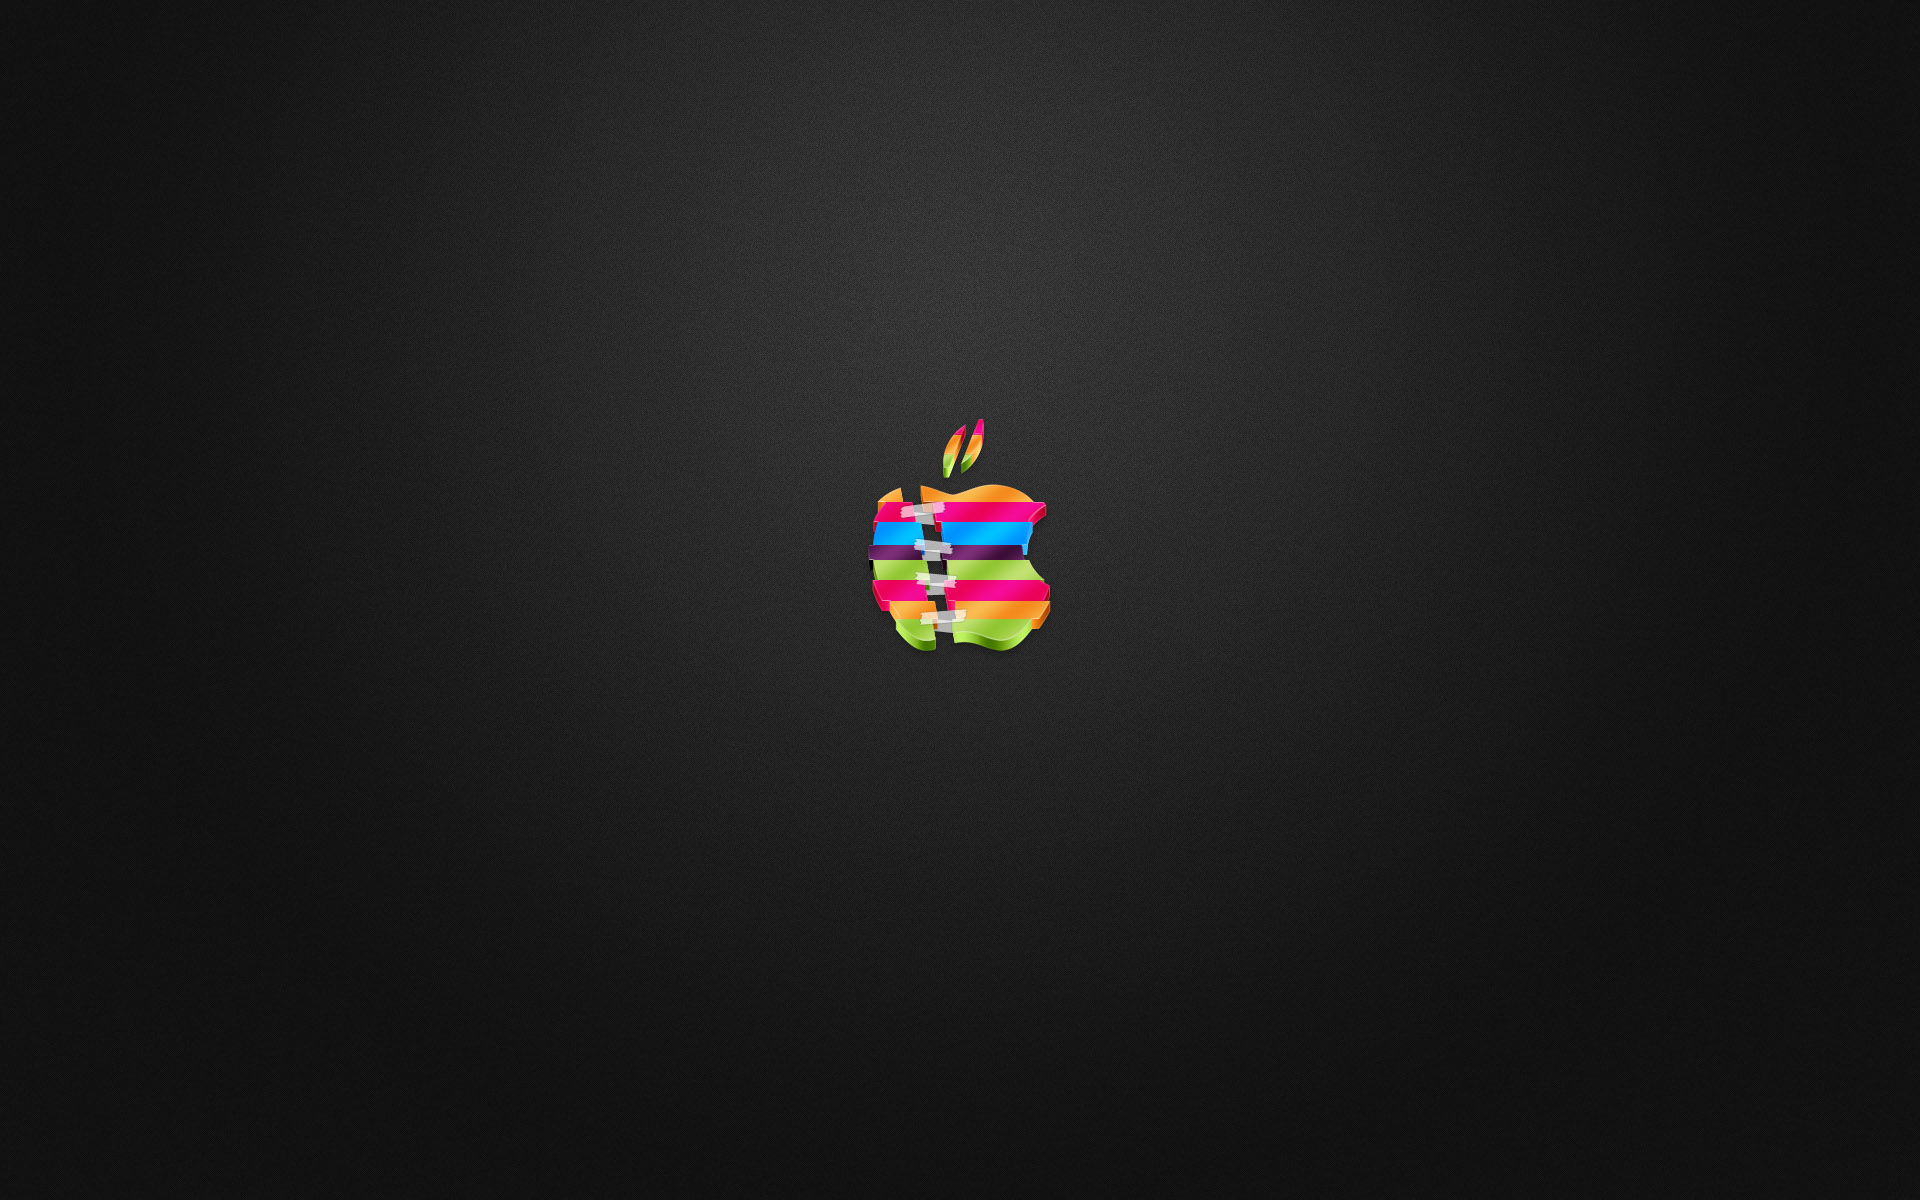 HD Apple wallpaper 17517